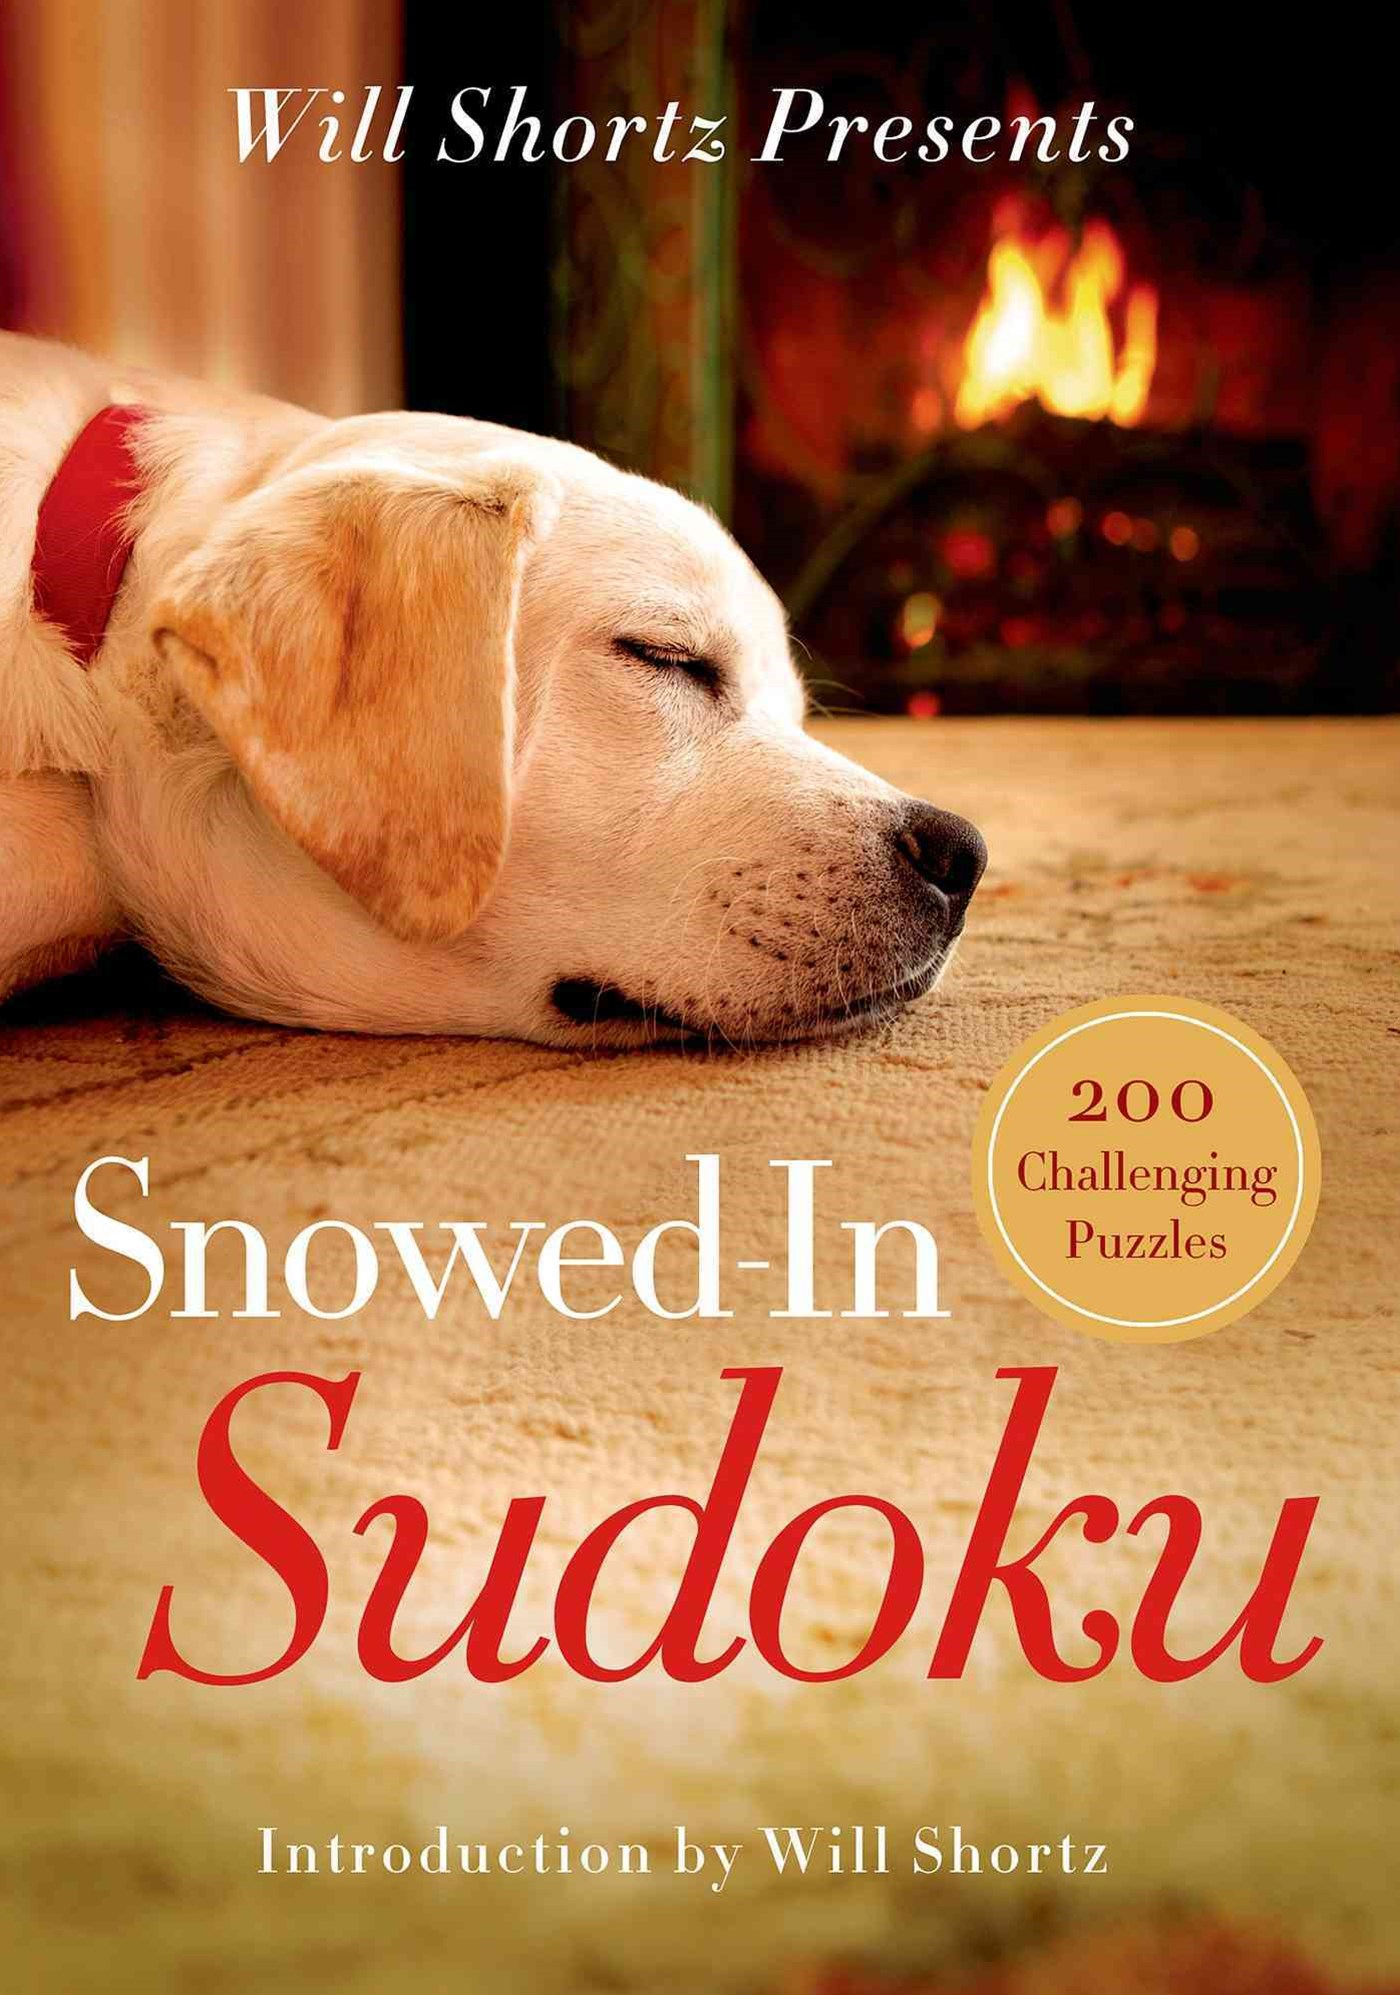 Will Shortz Presents Snowed-In Sudoku